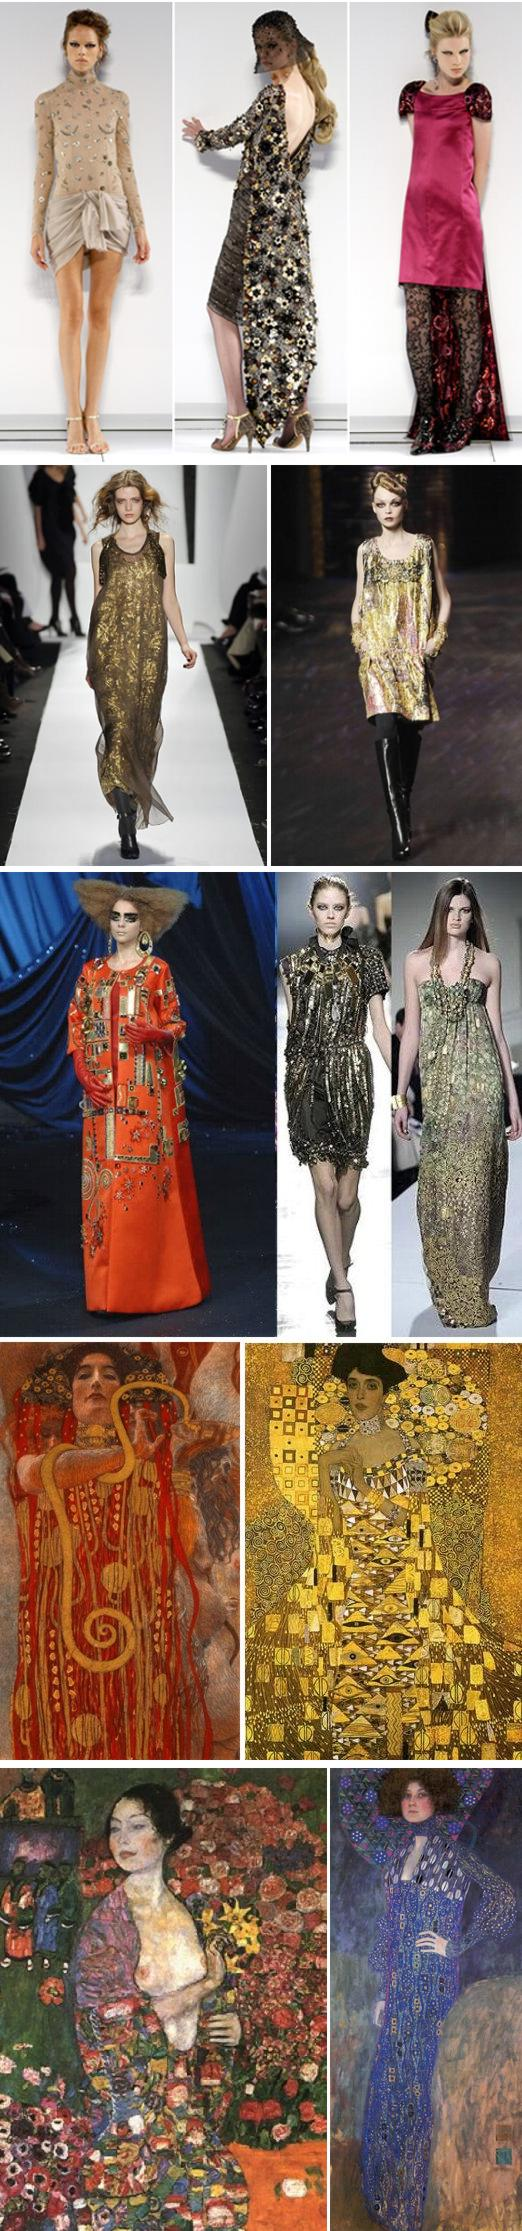 klimt fashion